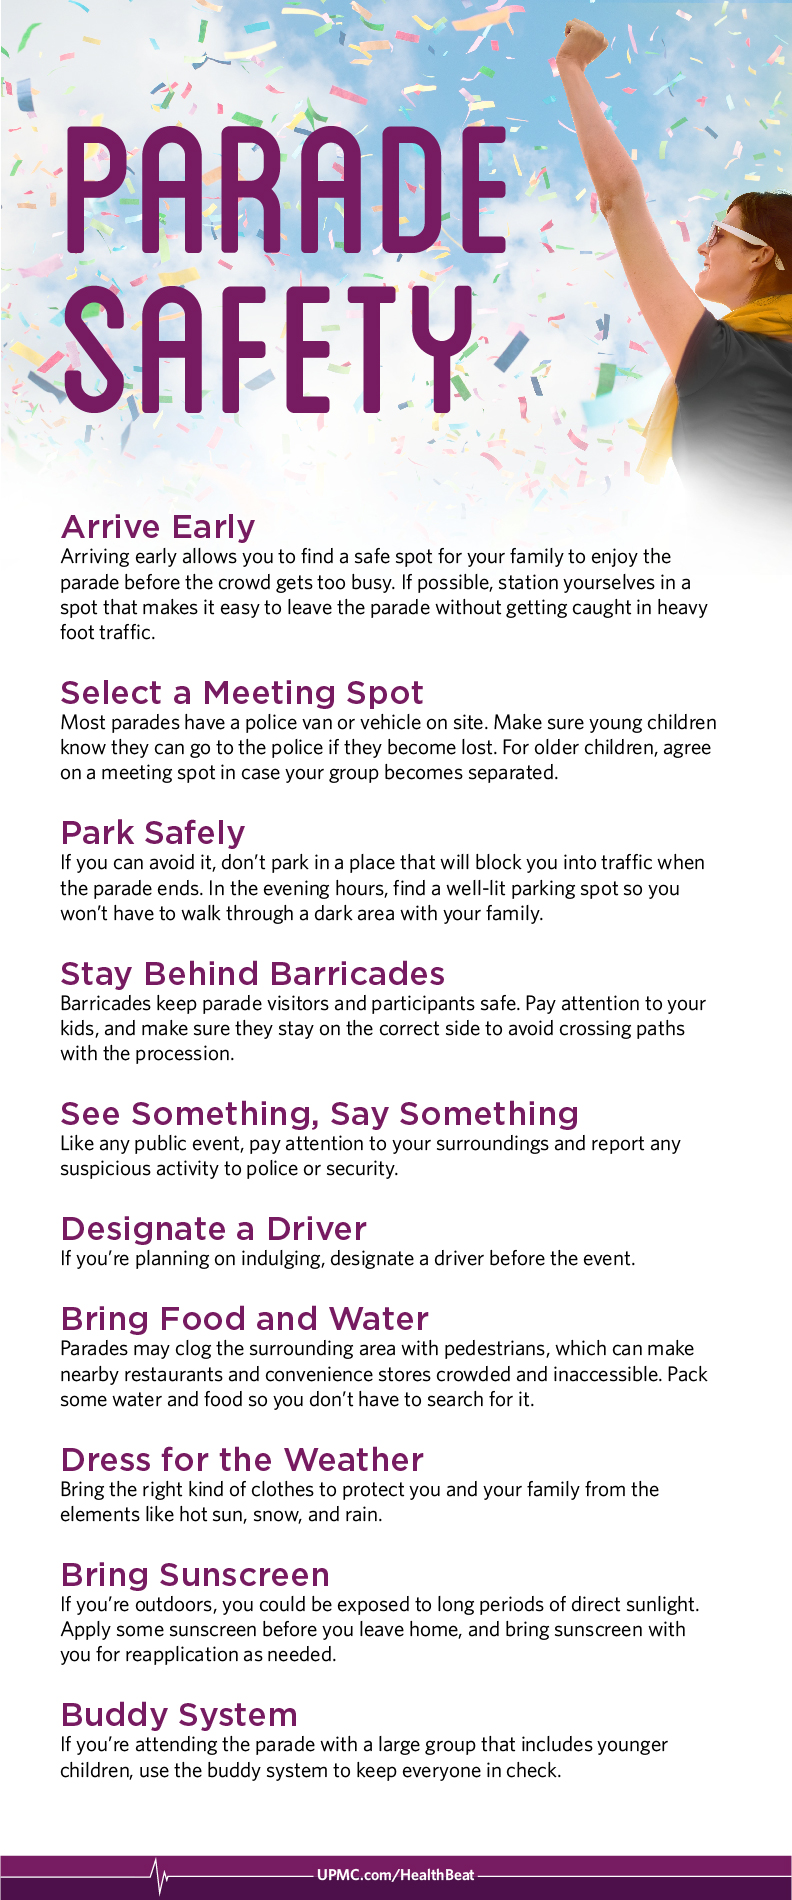 Learn more about parade safety